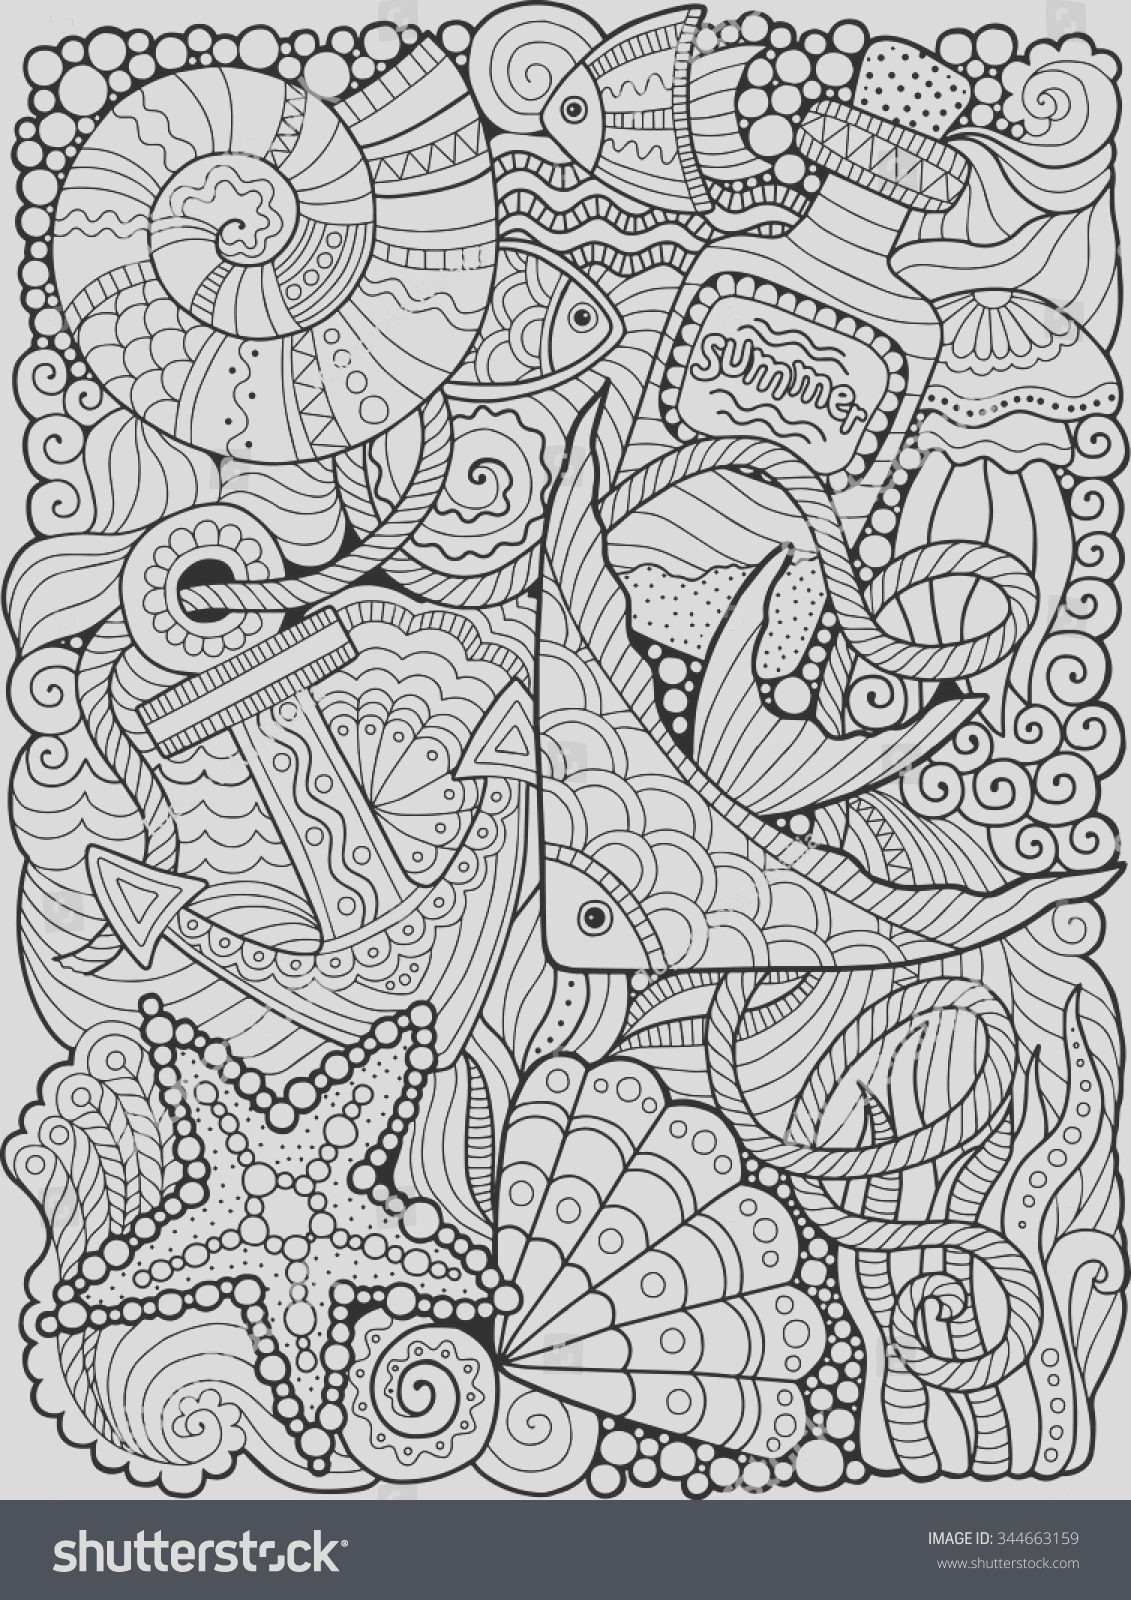 vector coloring book adult summers sea